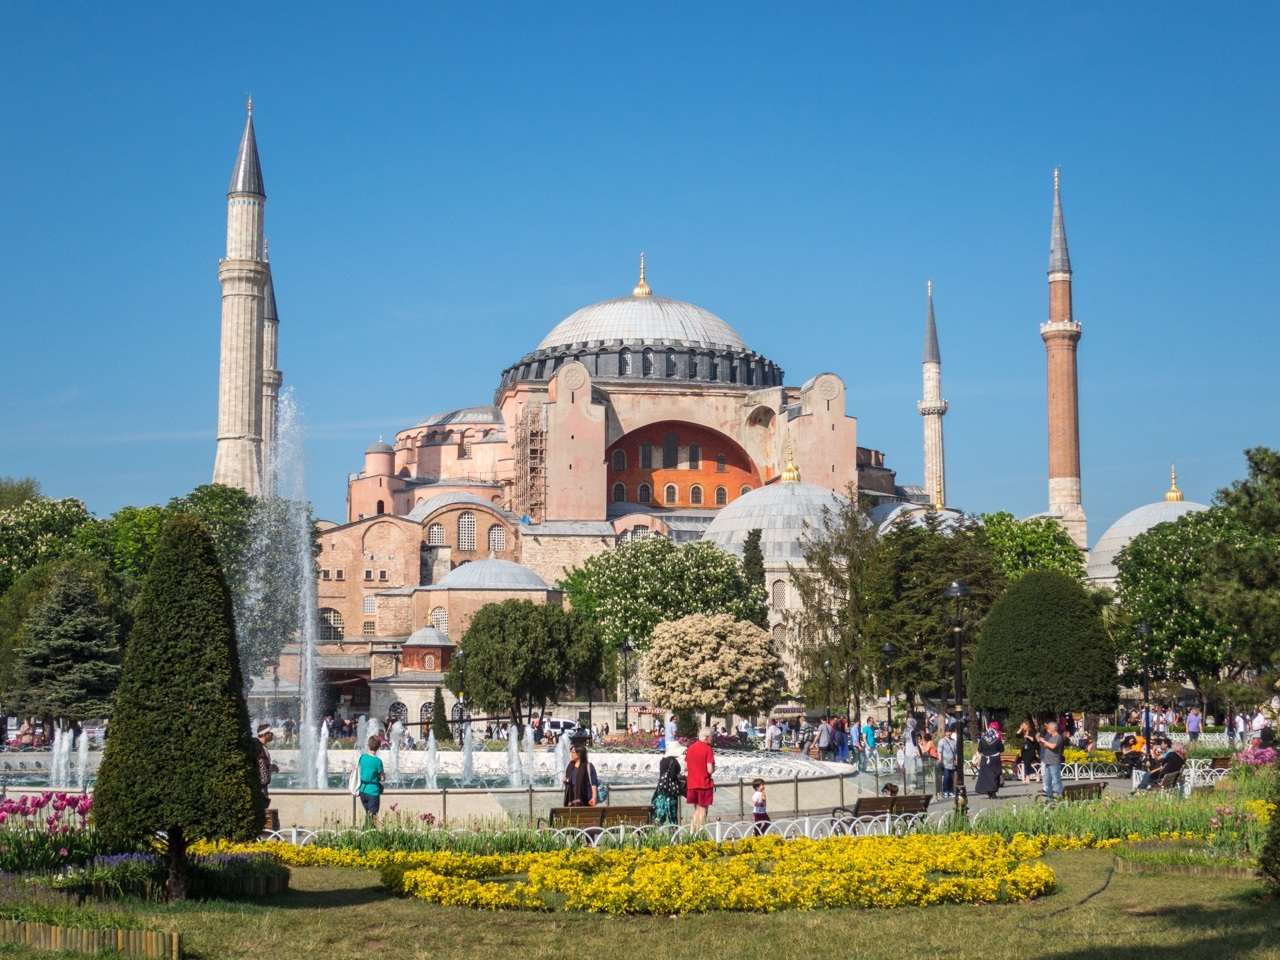 Visiting Hagia Sophia is one of the top things to do in Istanbul, Turkey.